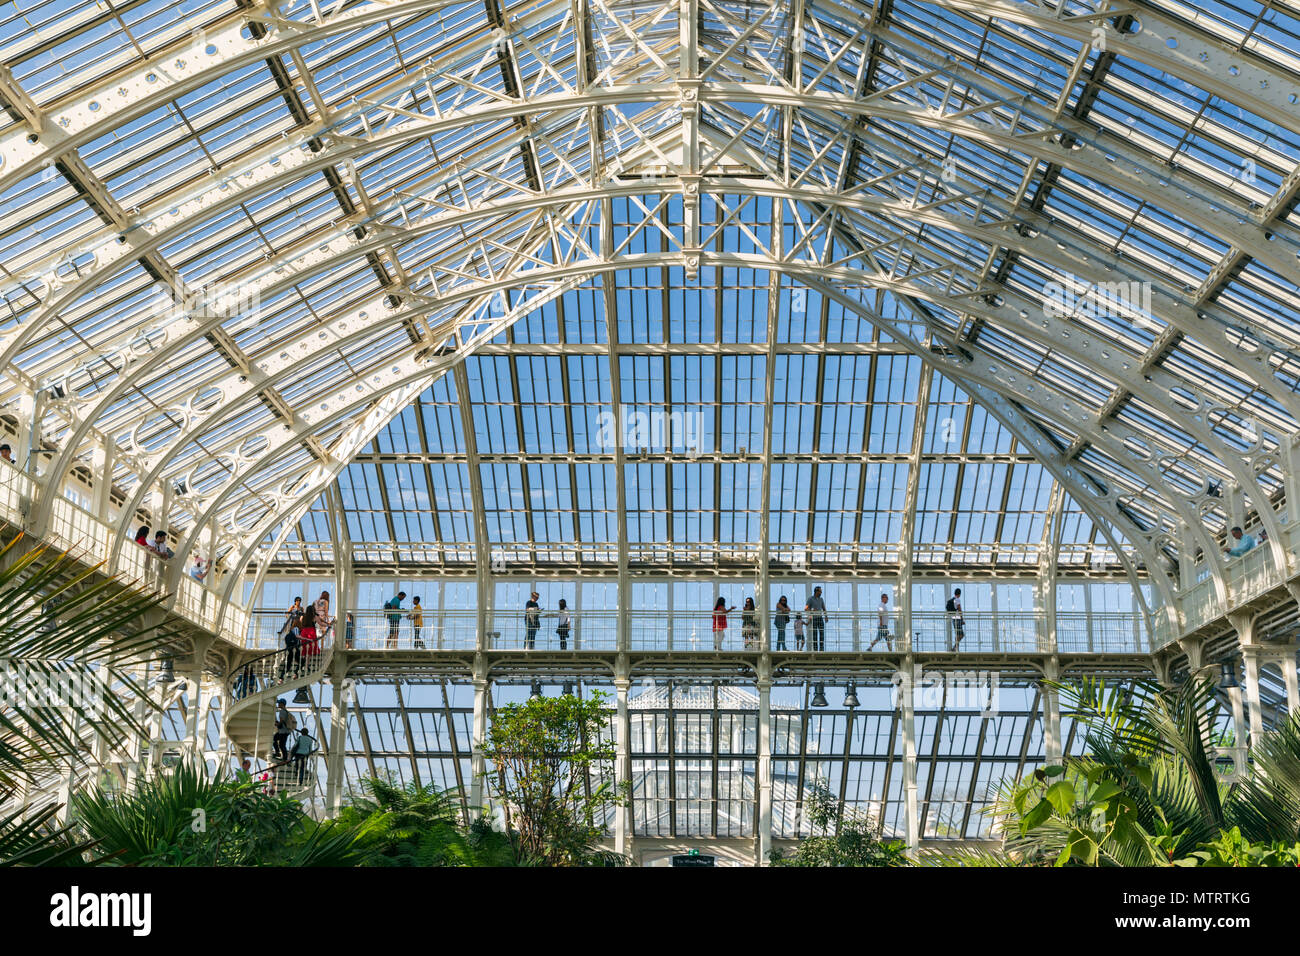 Interior View of the newly renovated Temperate House at the Royal Botanic Gardens Kew, Richmond Upon Thames, London, United Kingdom. Stock Photo